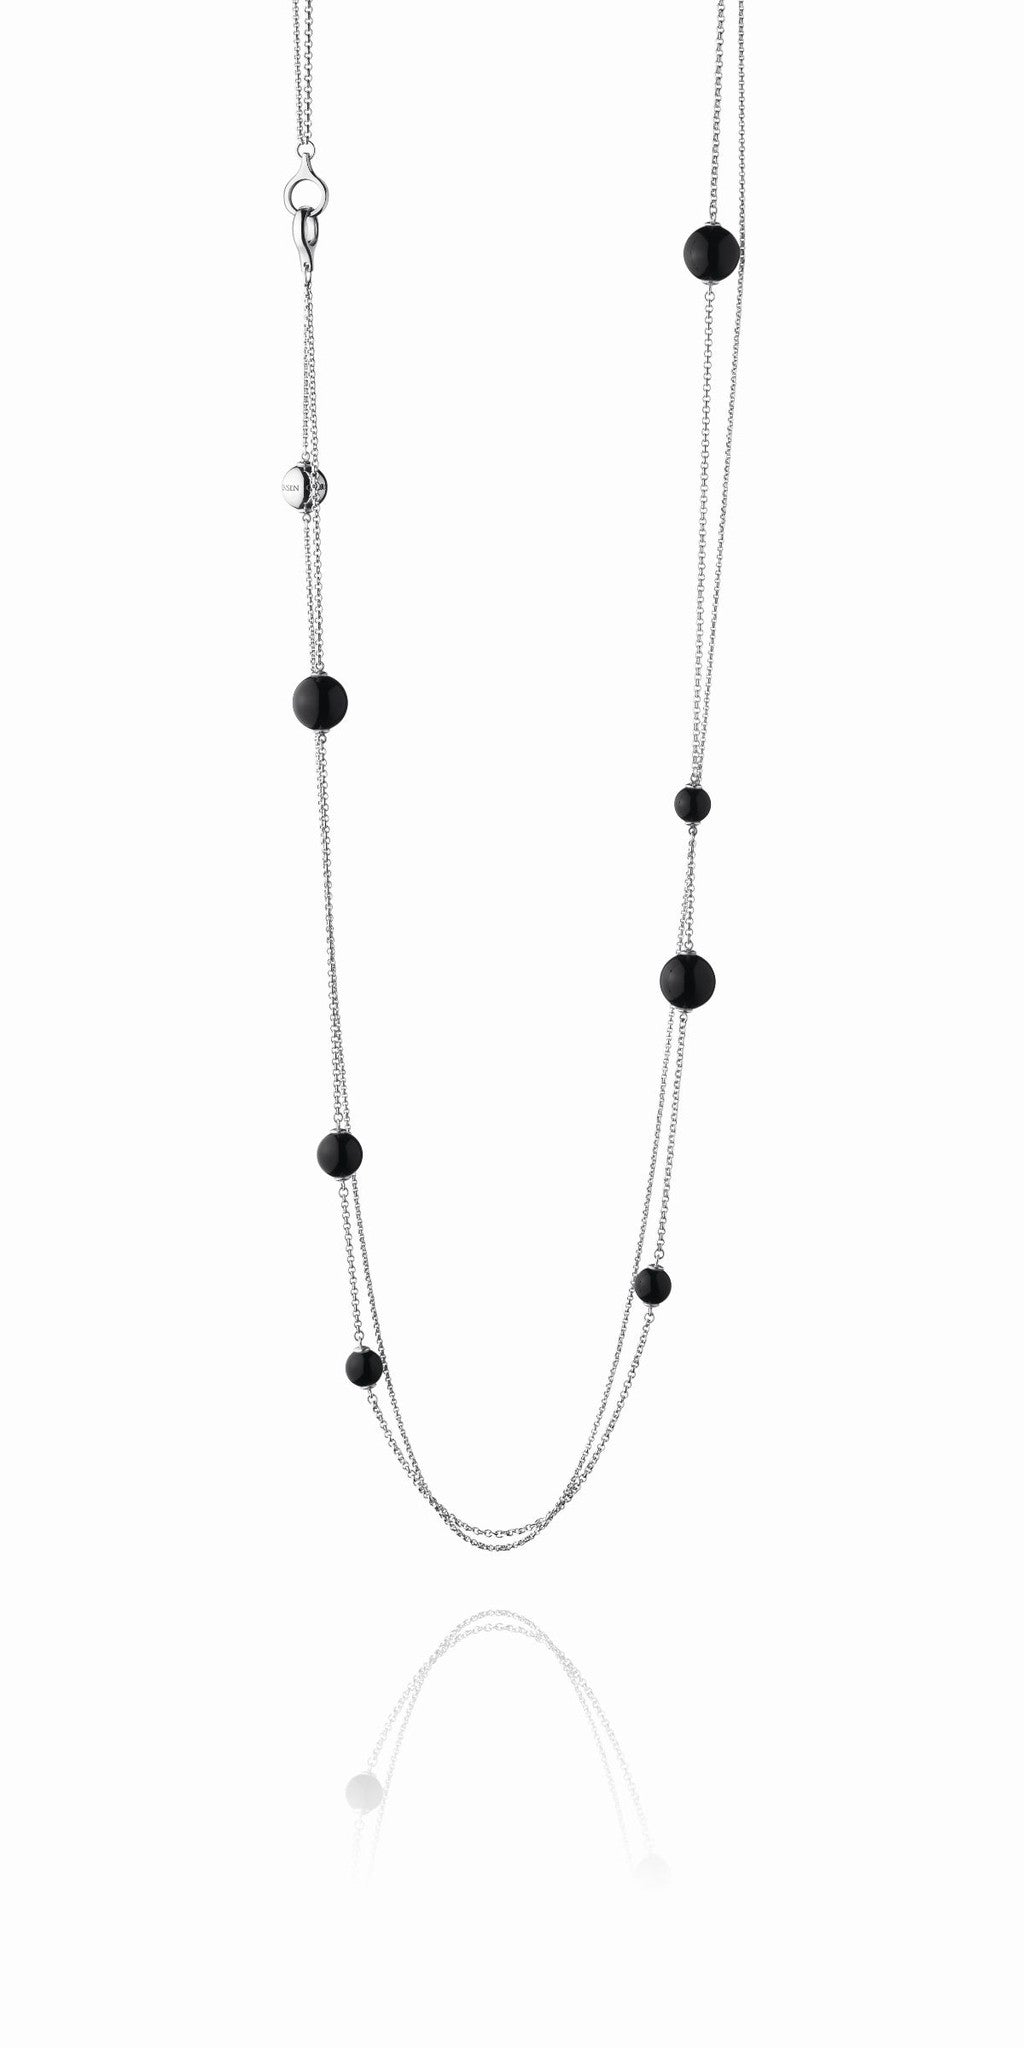 Georg Jensen Necklace Sphere Black Agate Sautoir